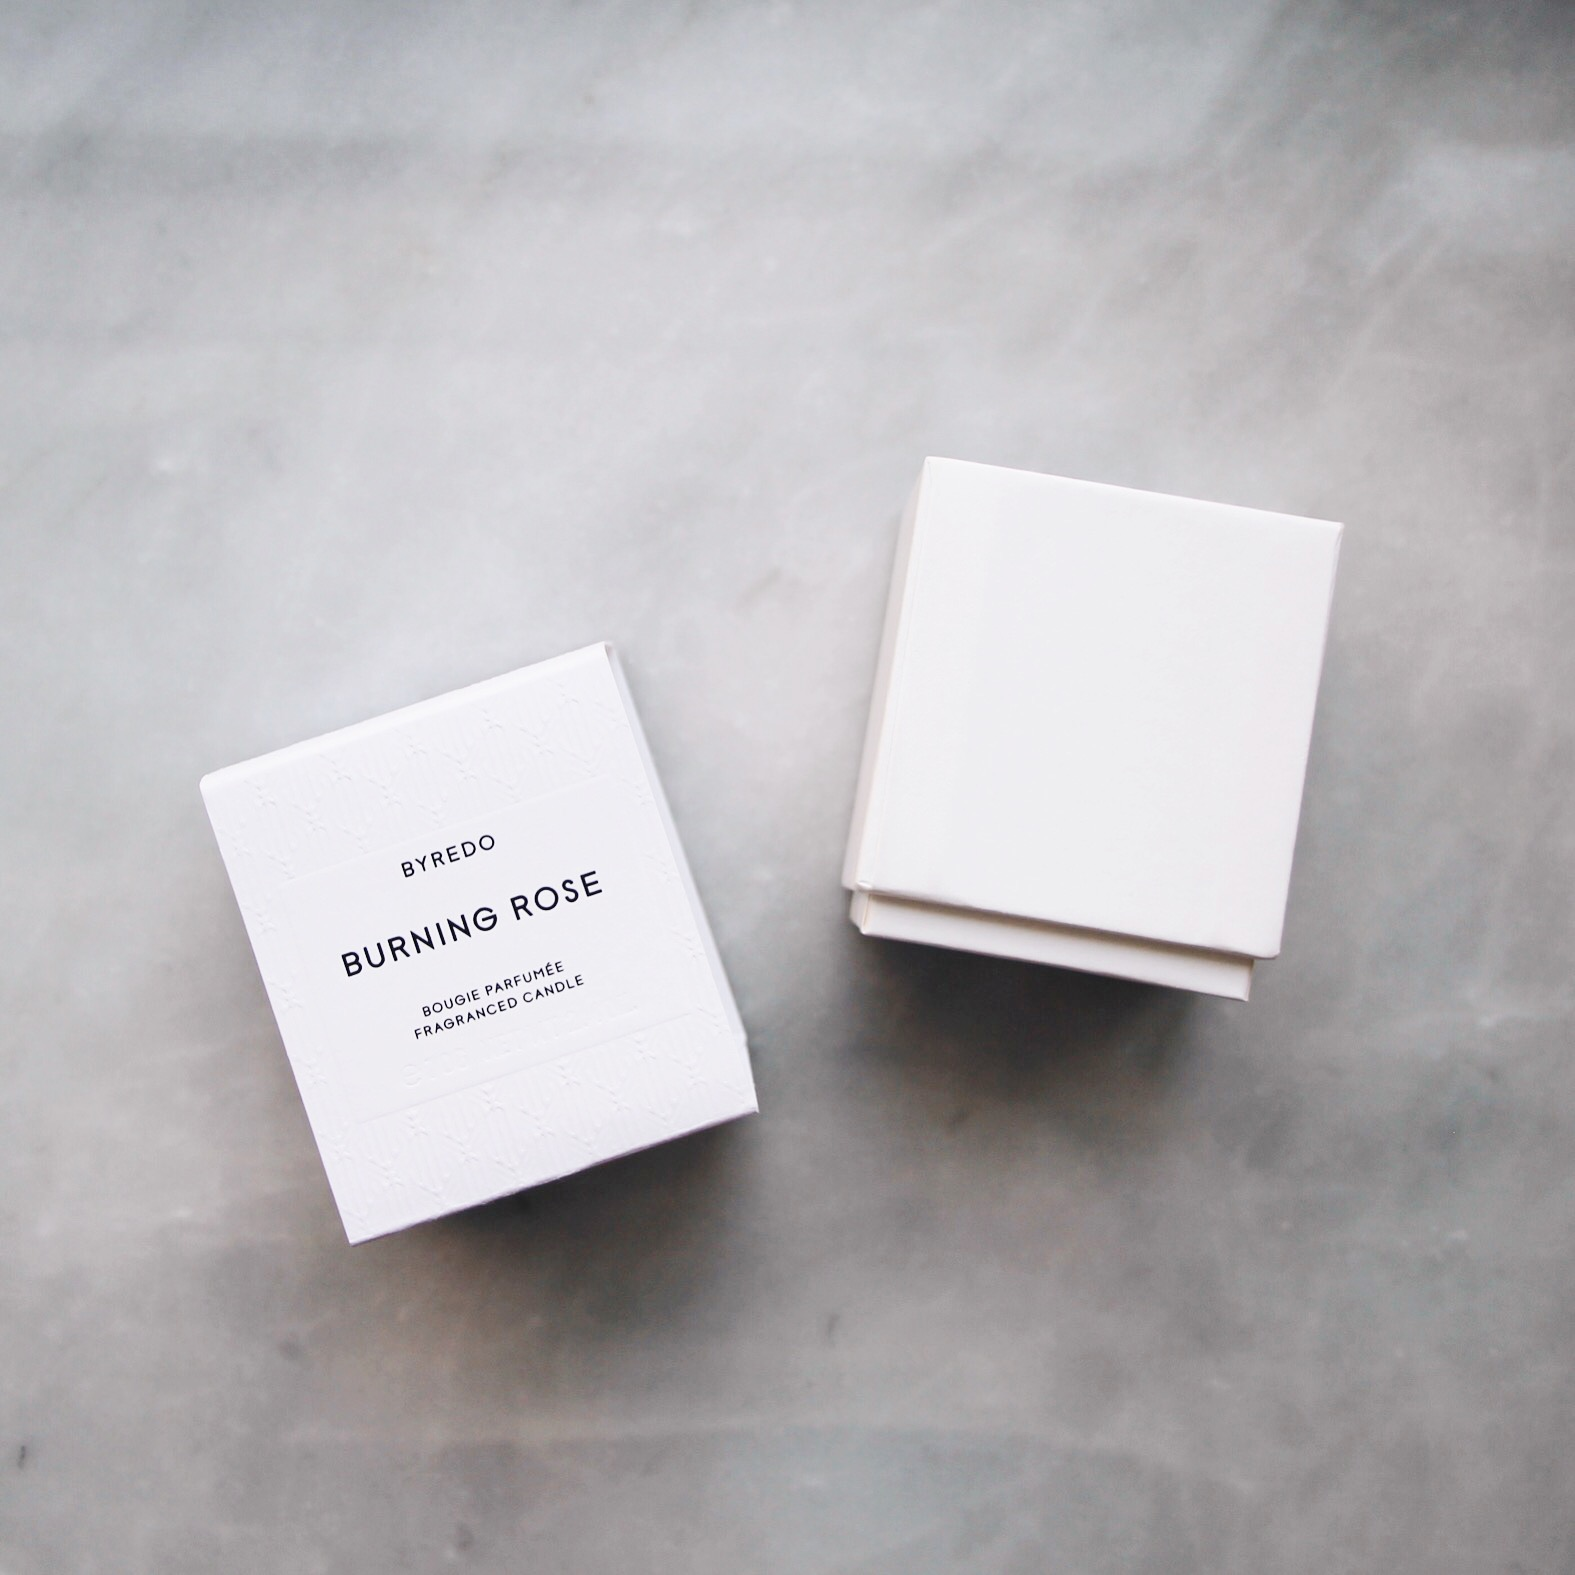 Byredo Gift Bag: Burning Rose Candle, Byredo Gift Bag, Burning Rose Candle, Mini Byredo Candle